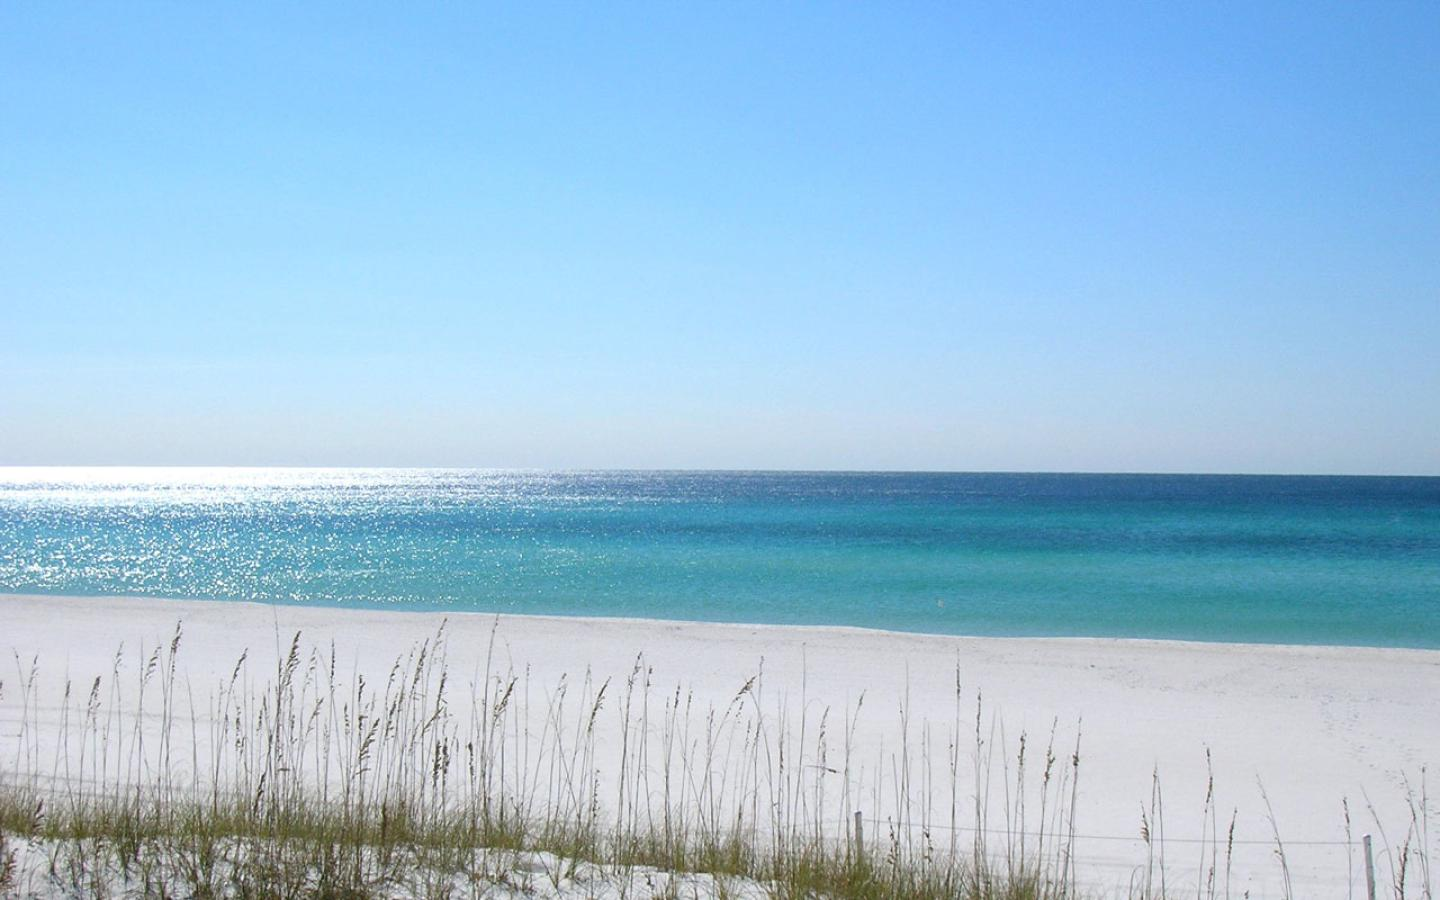 Panama City Beach, Florida Wallpaper #1 1440 x 900